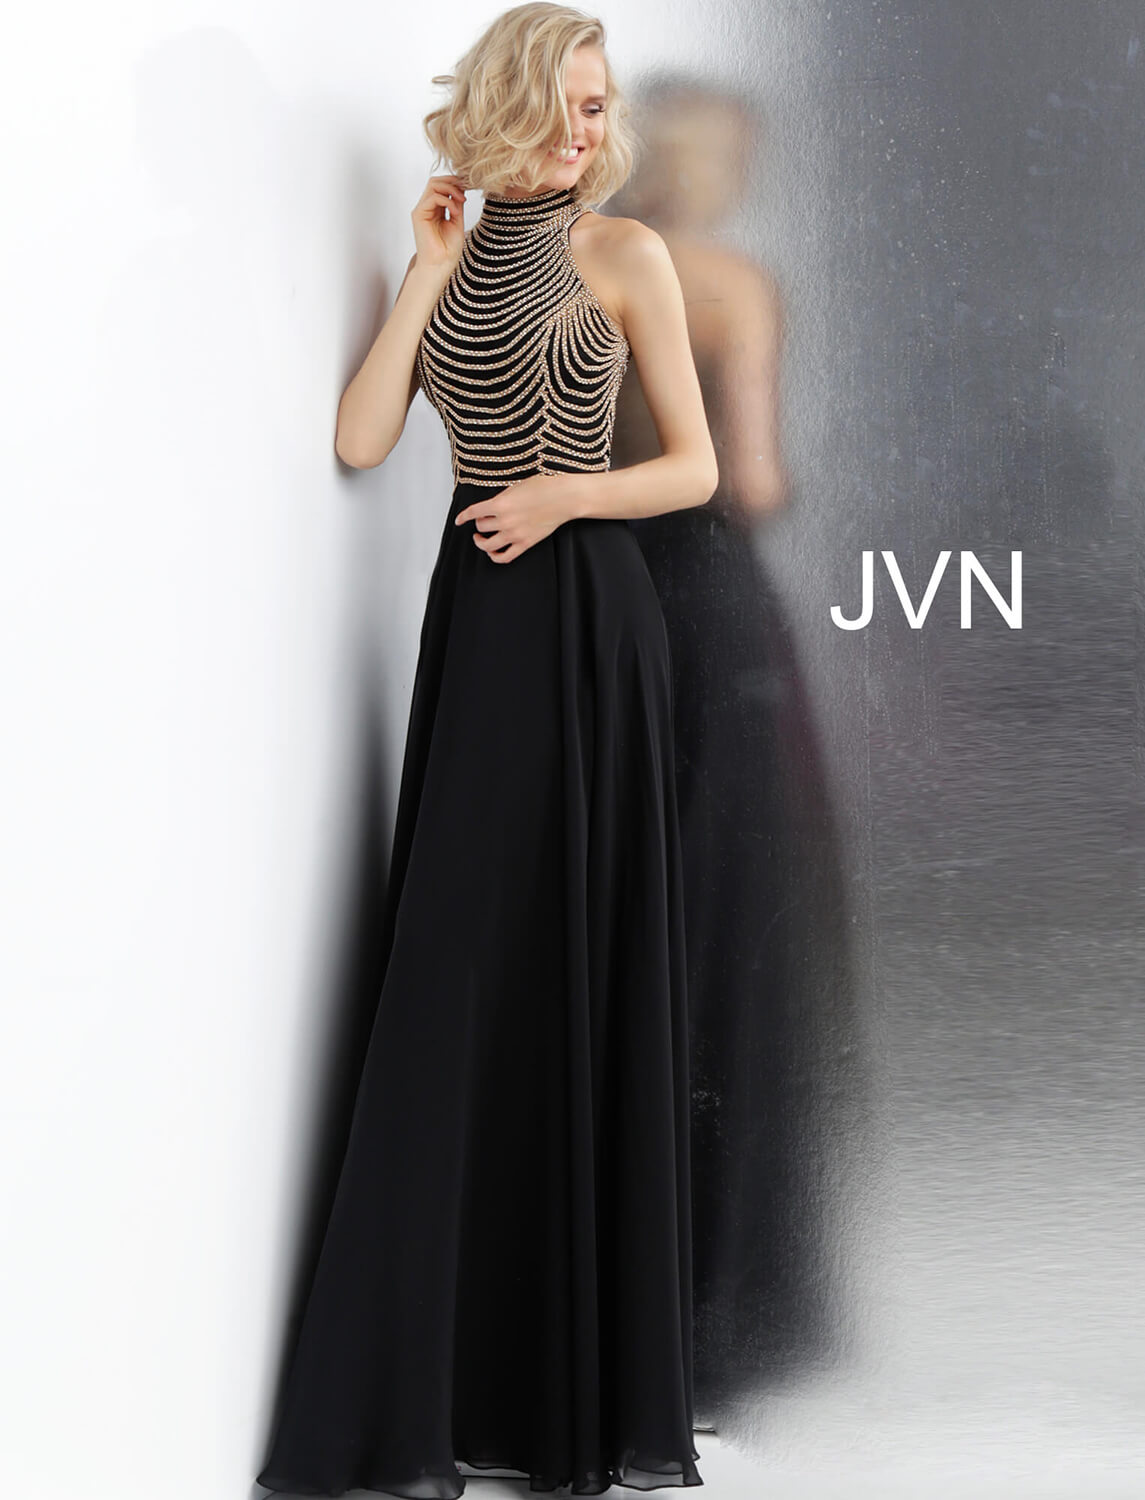 Jvn65987 Dress Black And Gold Embellished High Neck Sleeveless Prom Dress